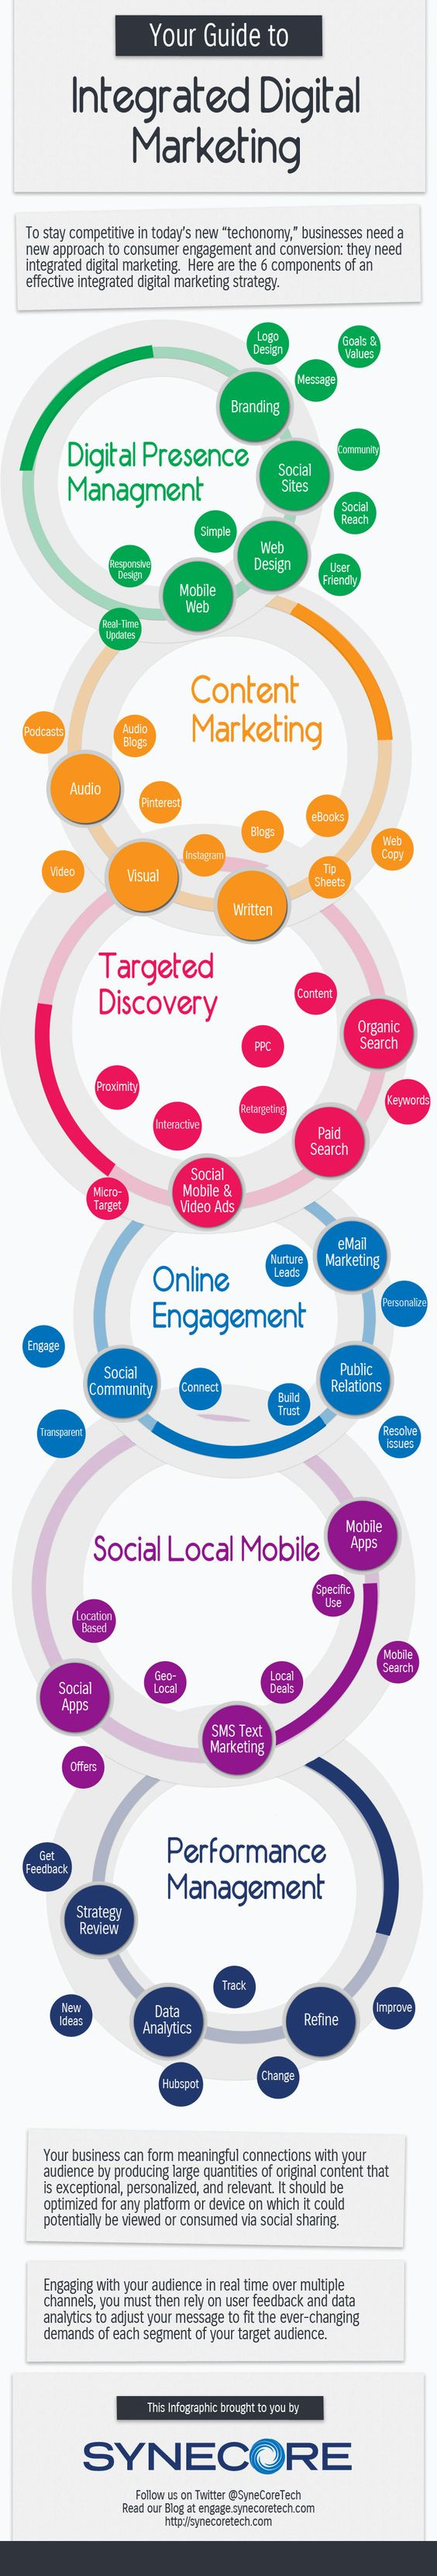 Your Guide to Integrated Digital Marketing